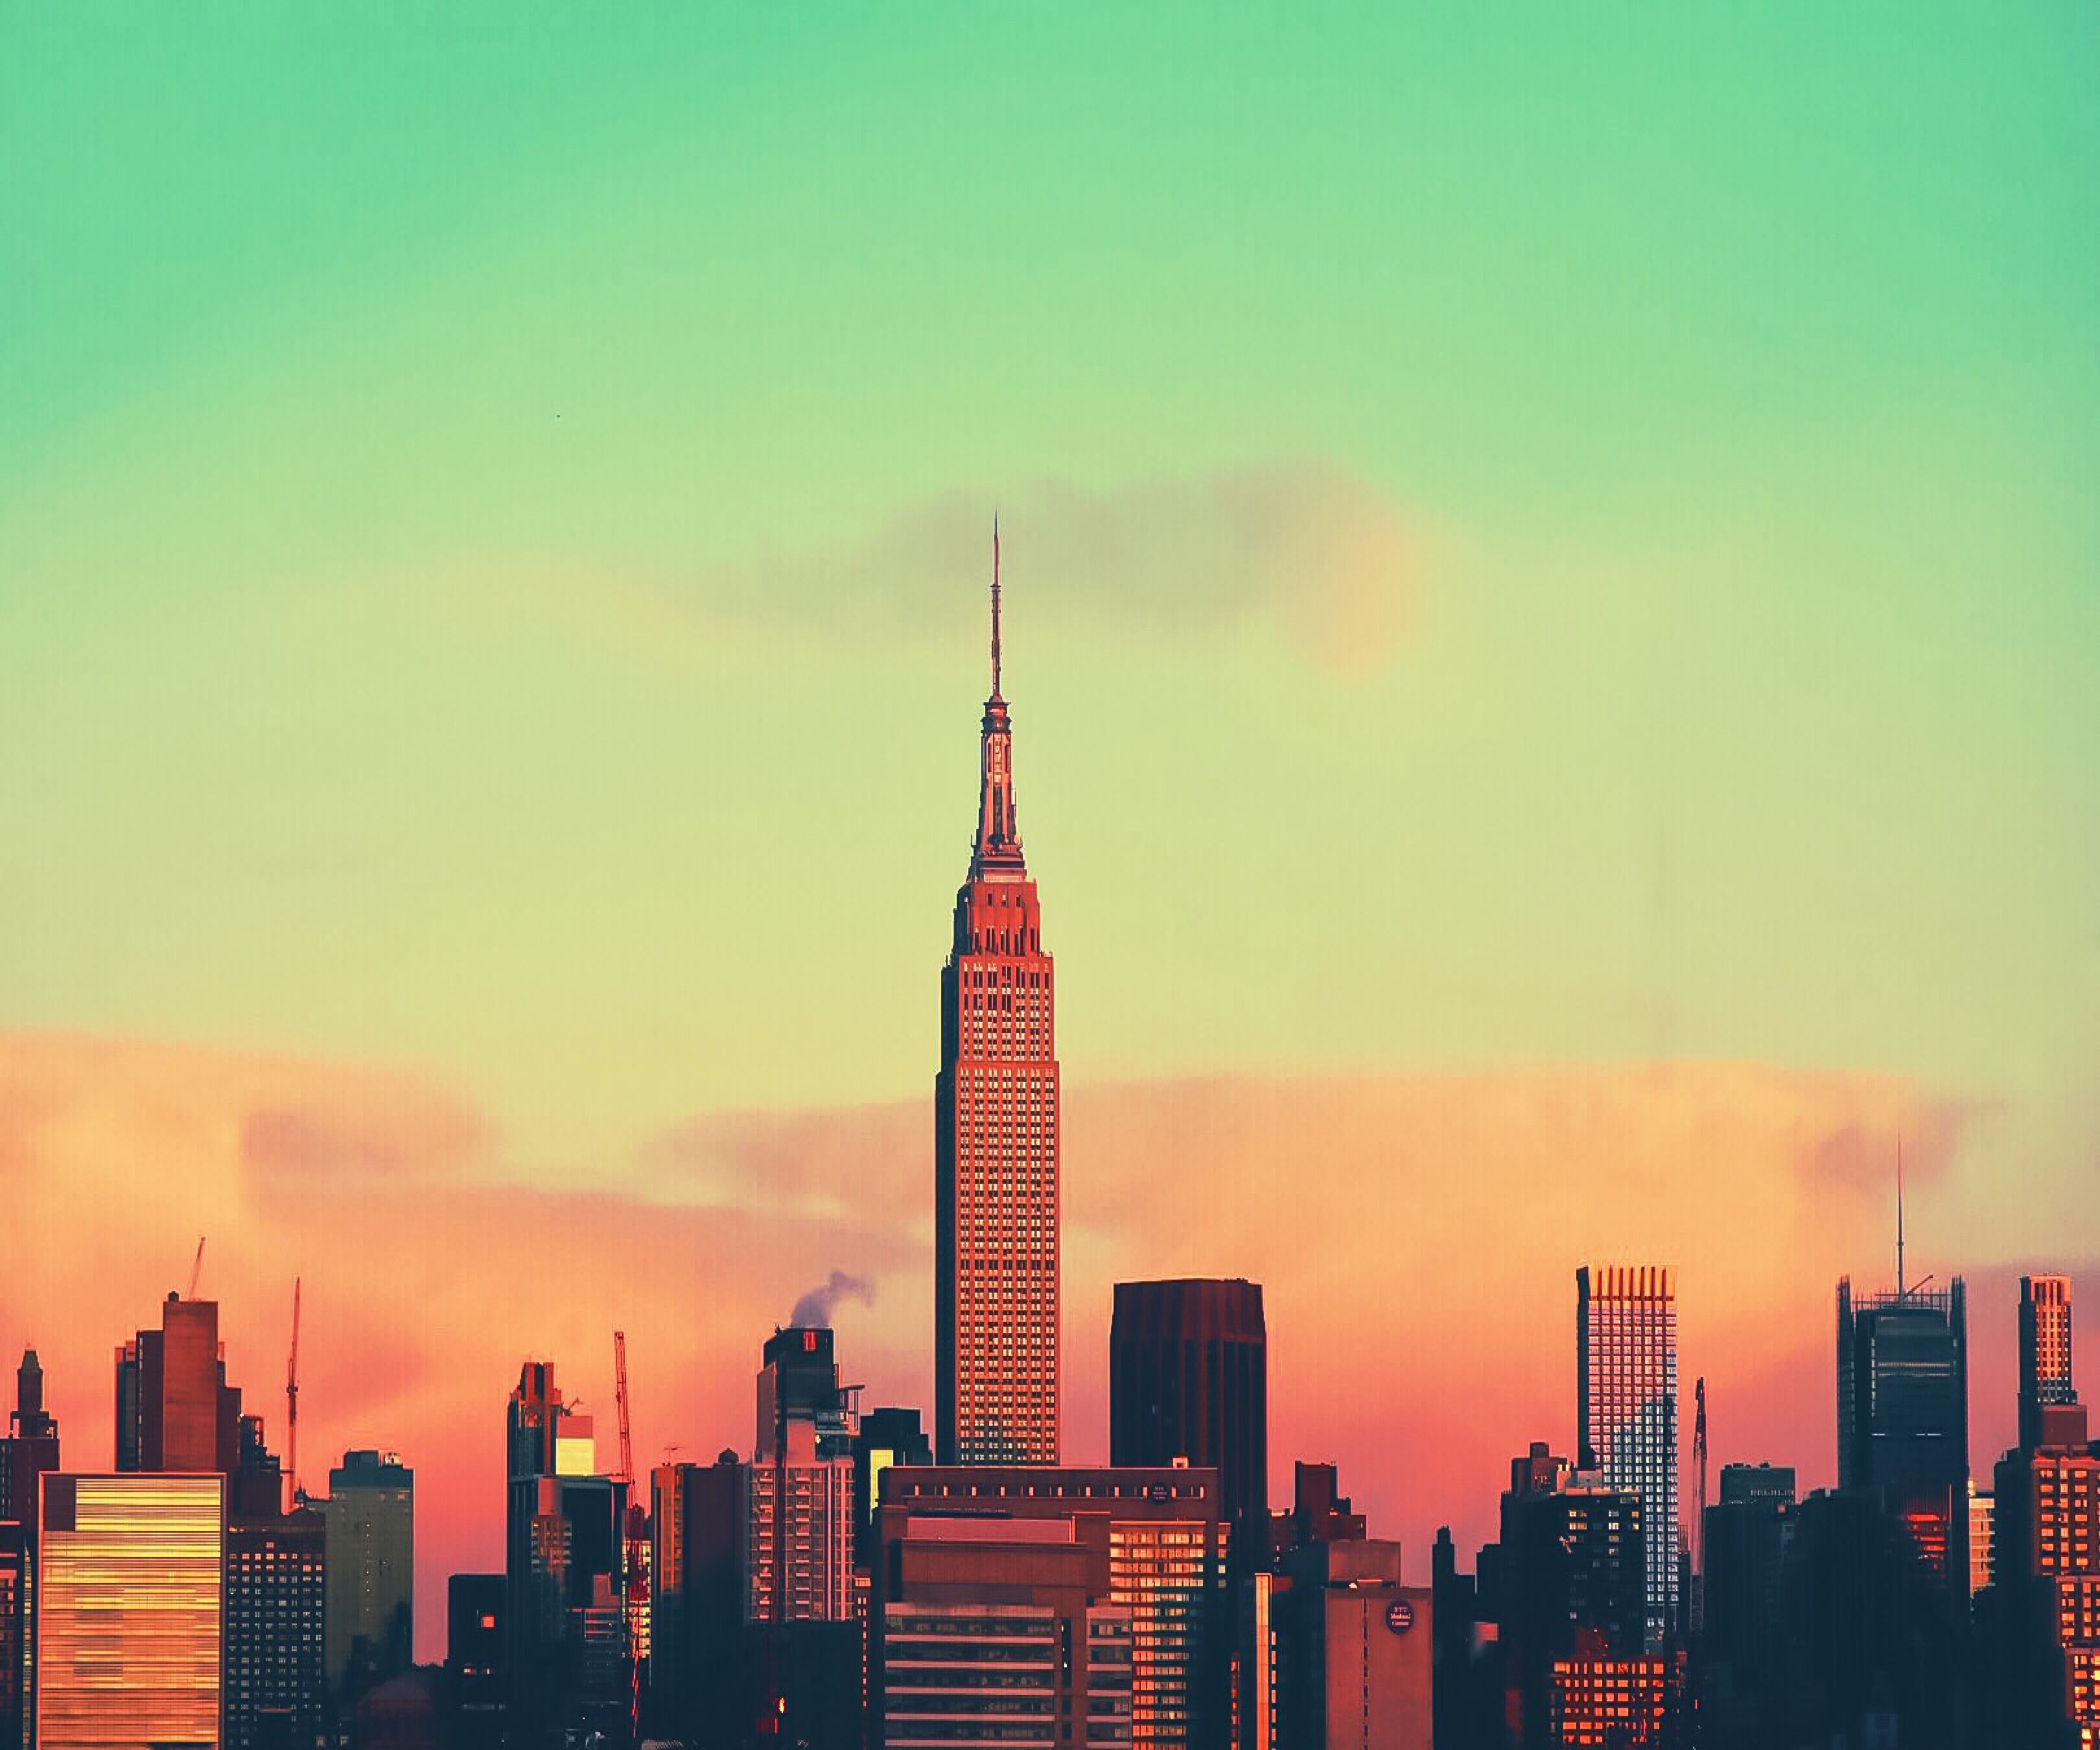 Empire State Building Quote: Free Stock Photo Of Architecture, Buildings, City